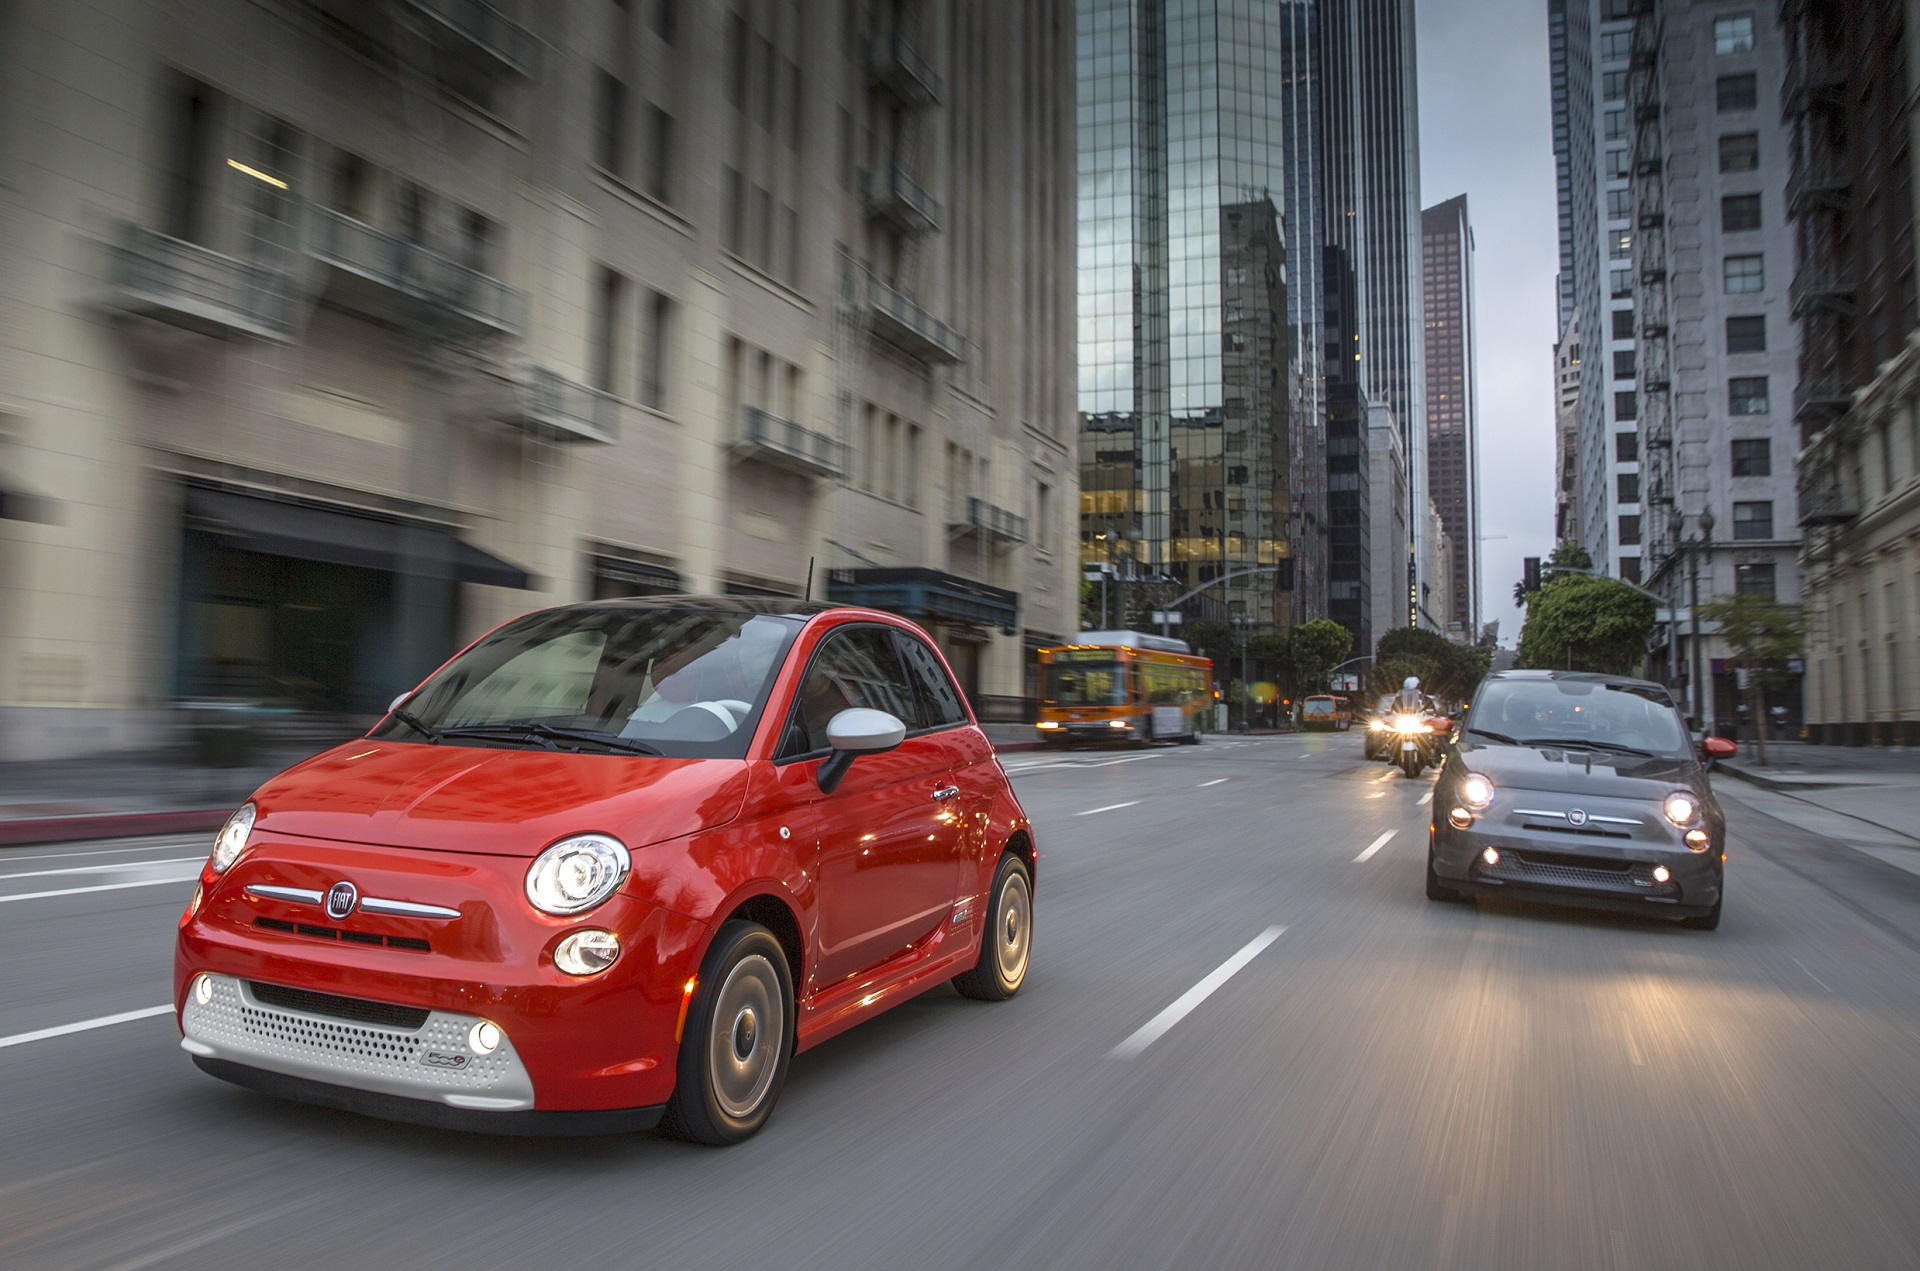 Electric Car Battery Lease Deal Of The Year Used Fiat 500e Electric Cars At 6 500